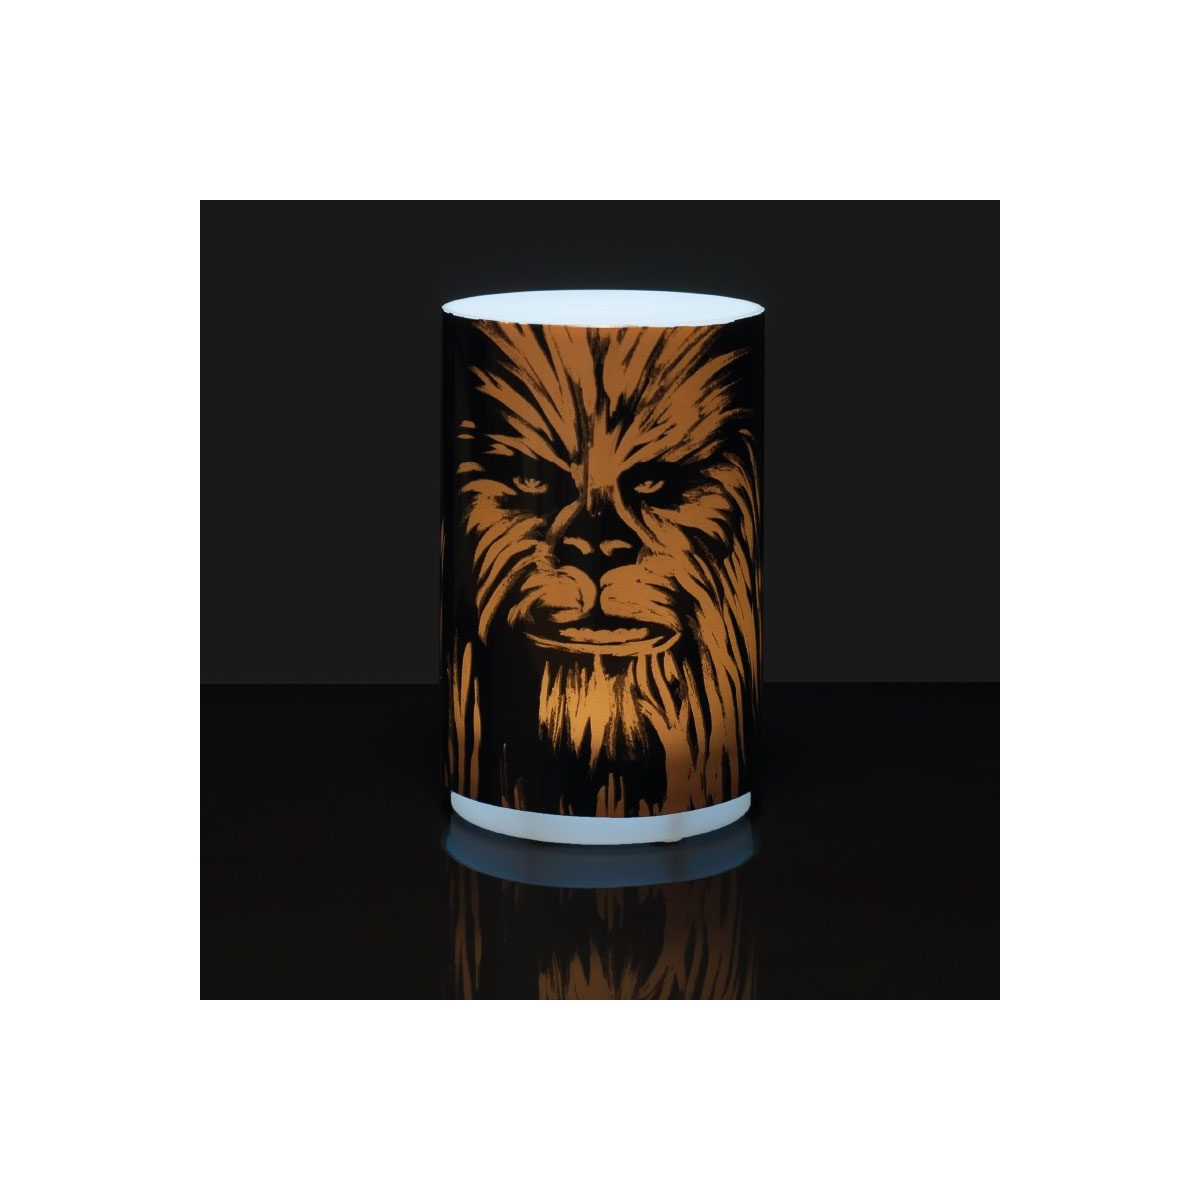 star wars episode viii veilleuse sonore chewbacca figurine discount. Black Bedroom Furniture Sets. Home Design Ideas